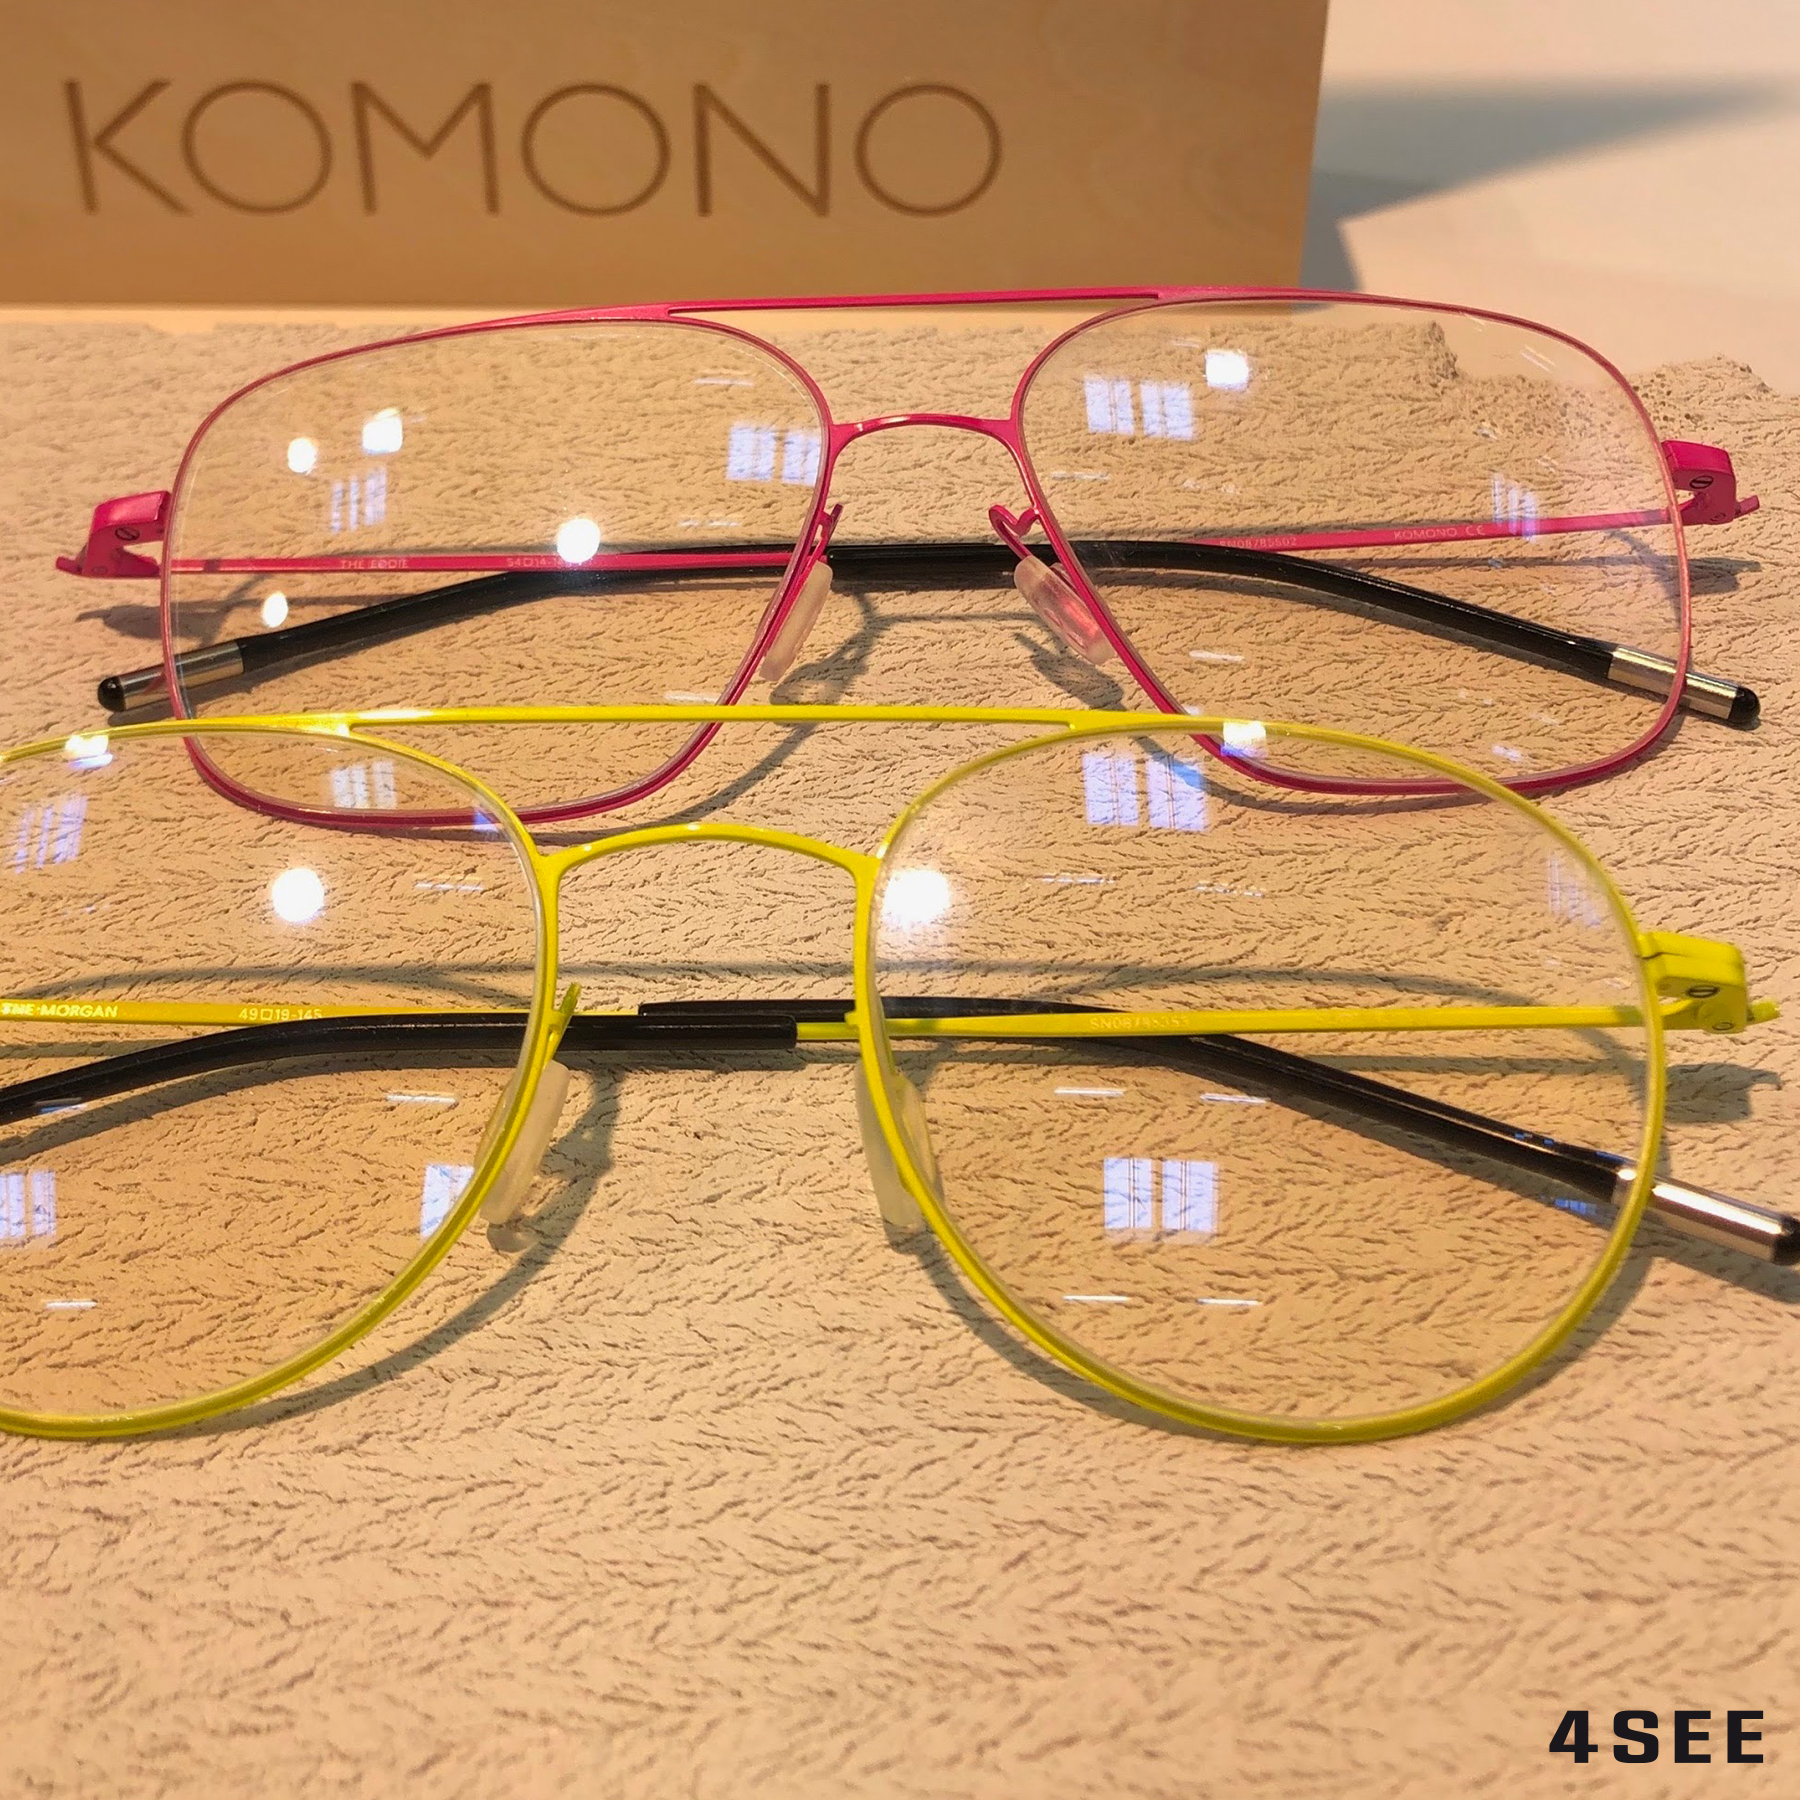 COLOR KOMONO EddieNeonPink MorganNeonYellow